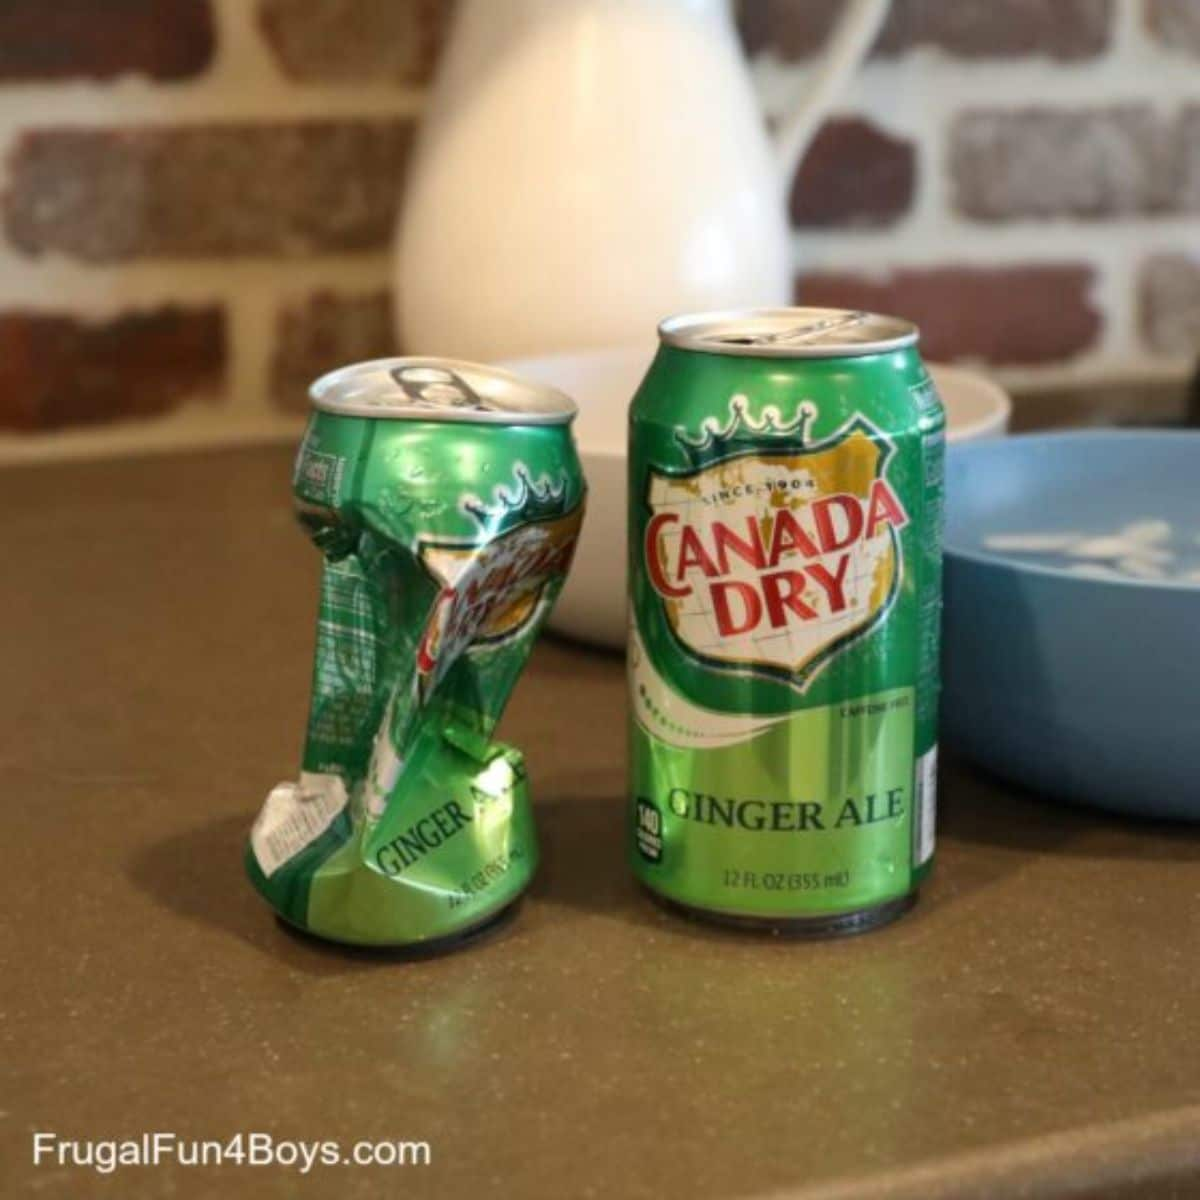 2 Canada Dry cans are on a kitchen counter, one crushed. one white and one blue bowl sits behind